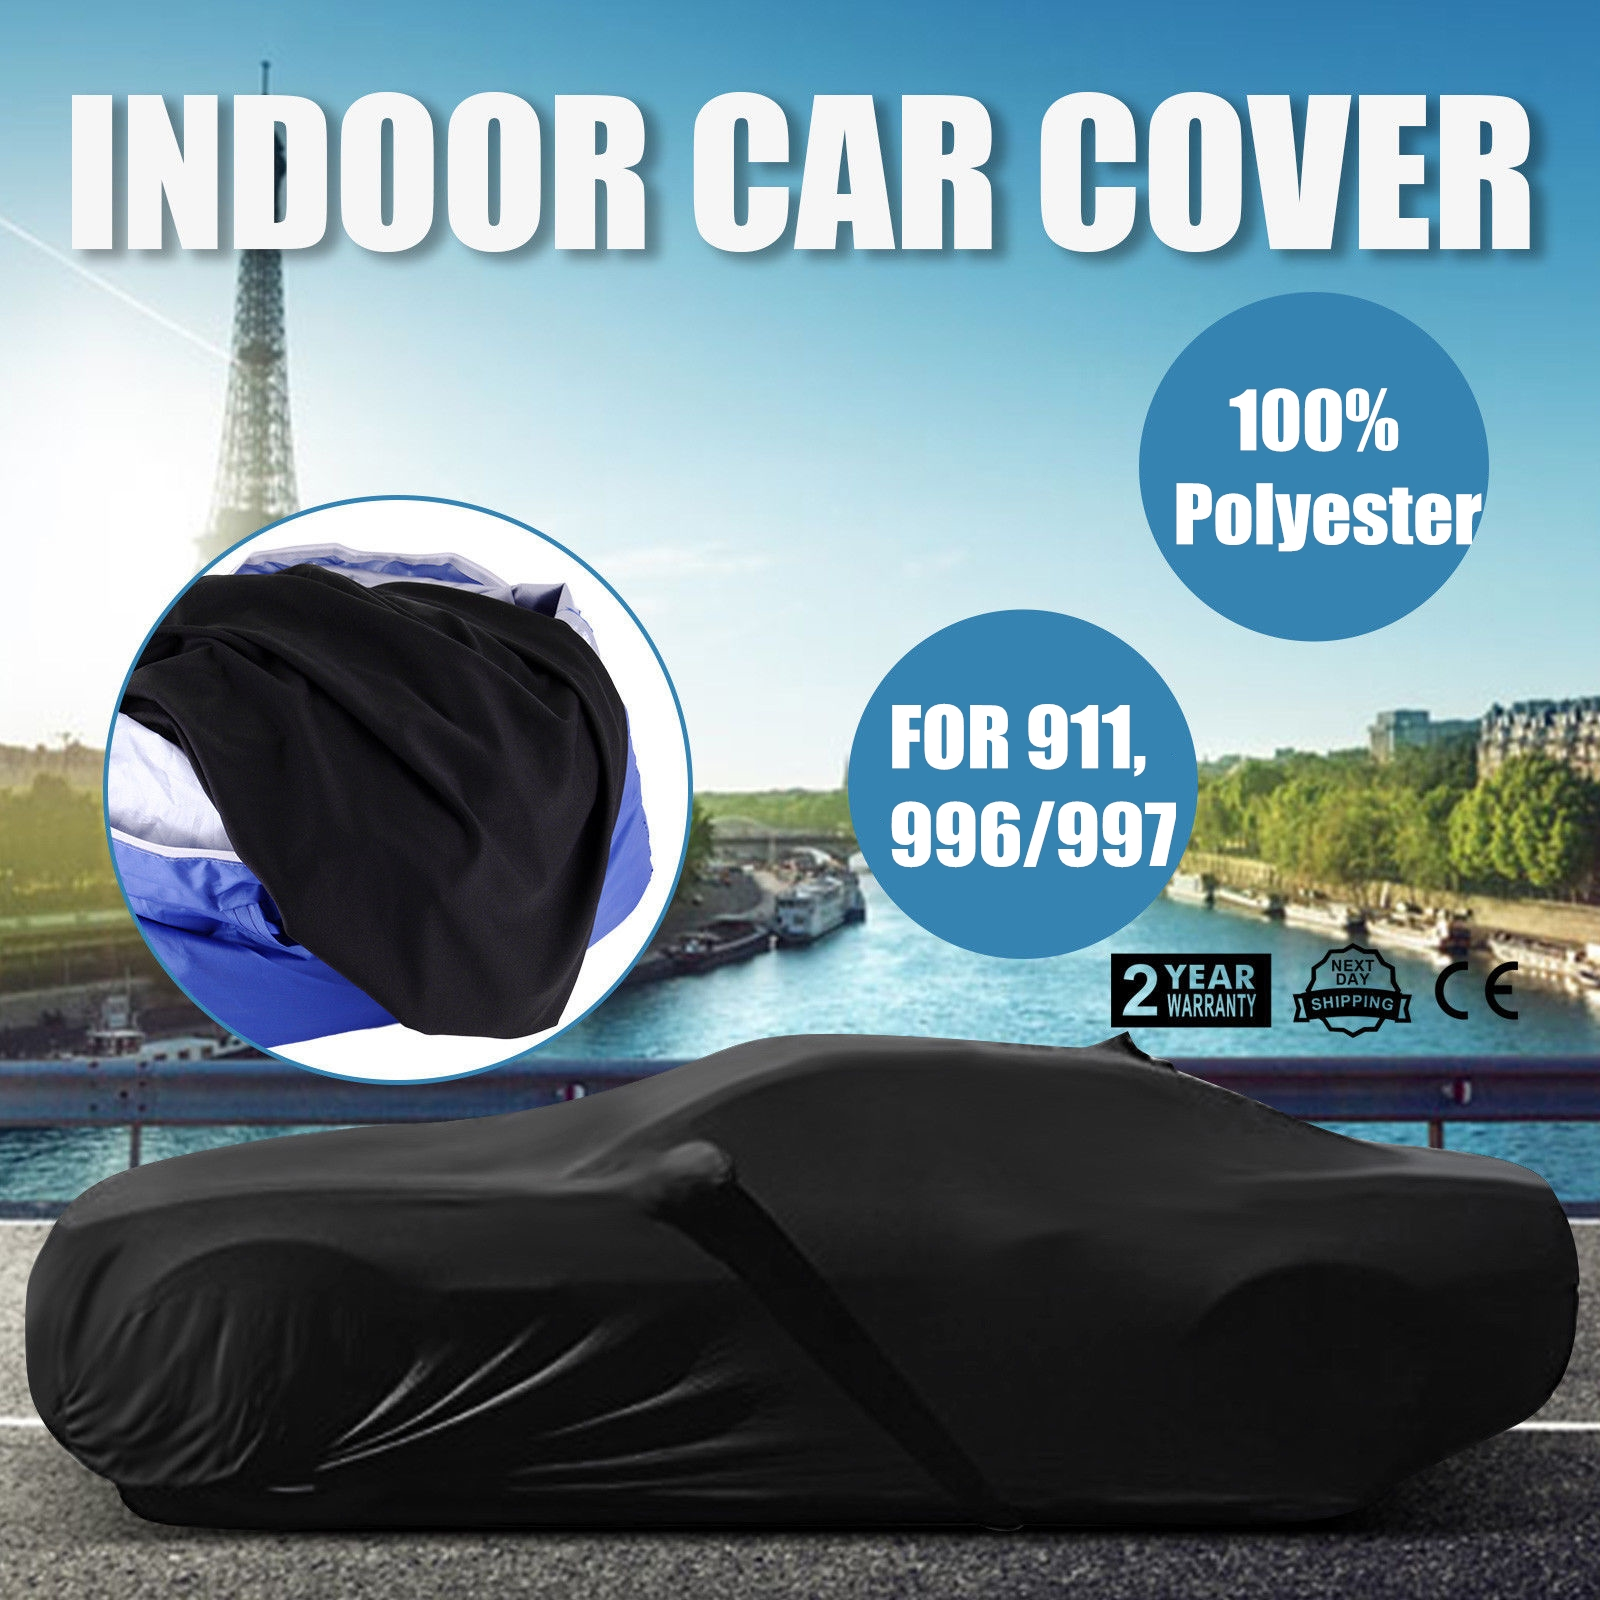 soft indoor car cover for porsche 911 996 997 coupe. Black Bedroom Furniture Sets. Home Design Ideas